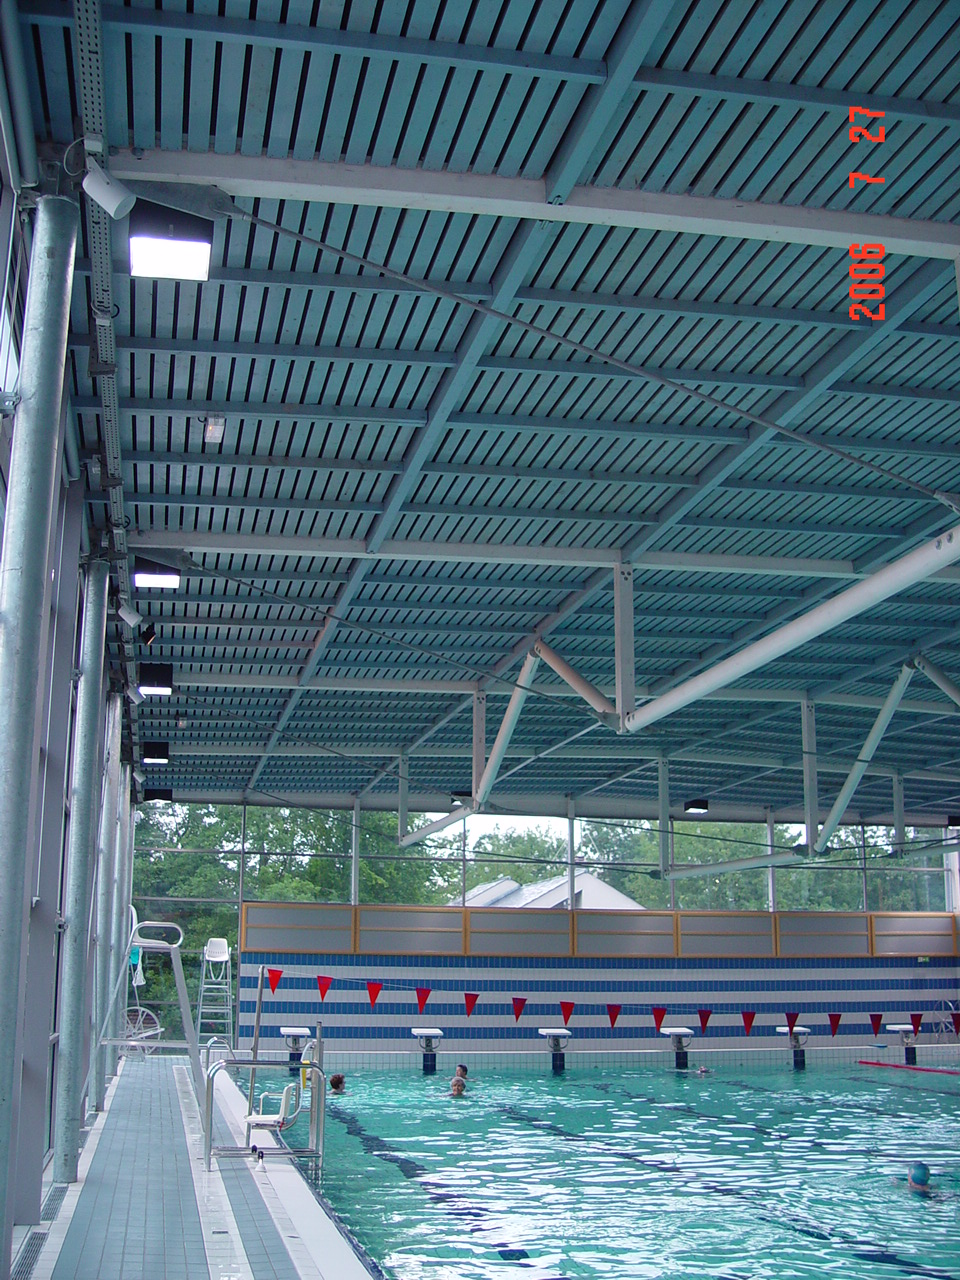 Piscine celle saint cloud tisseyre associ s for Piscine saint cloud